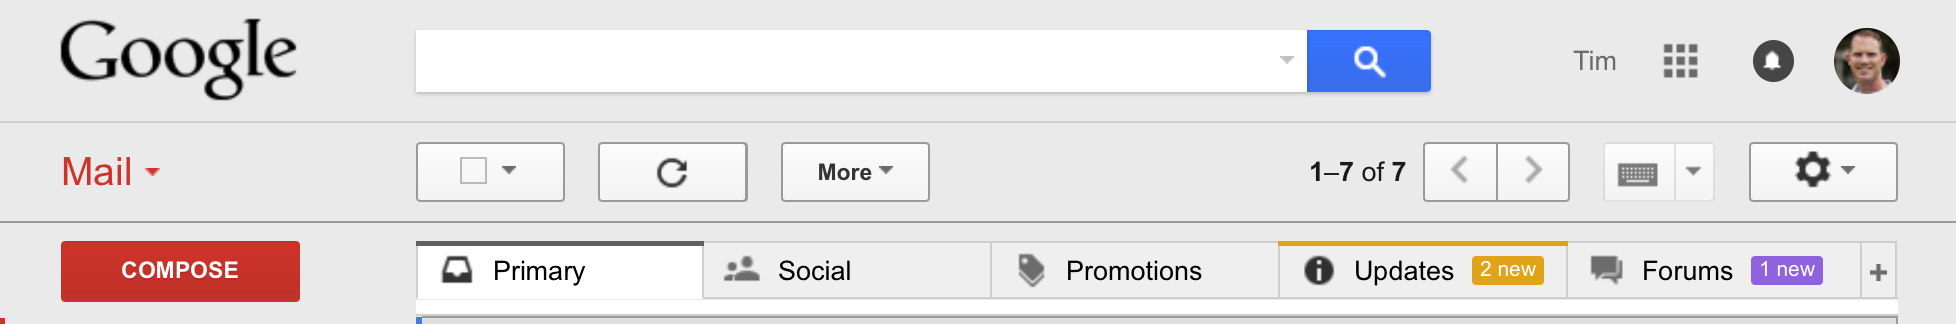 Gmail on Google Apps for Work Screenshot